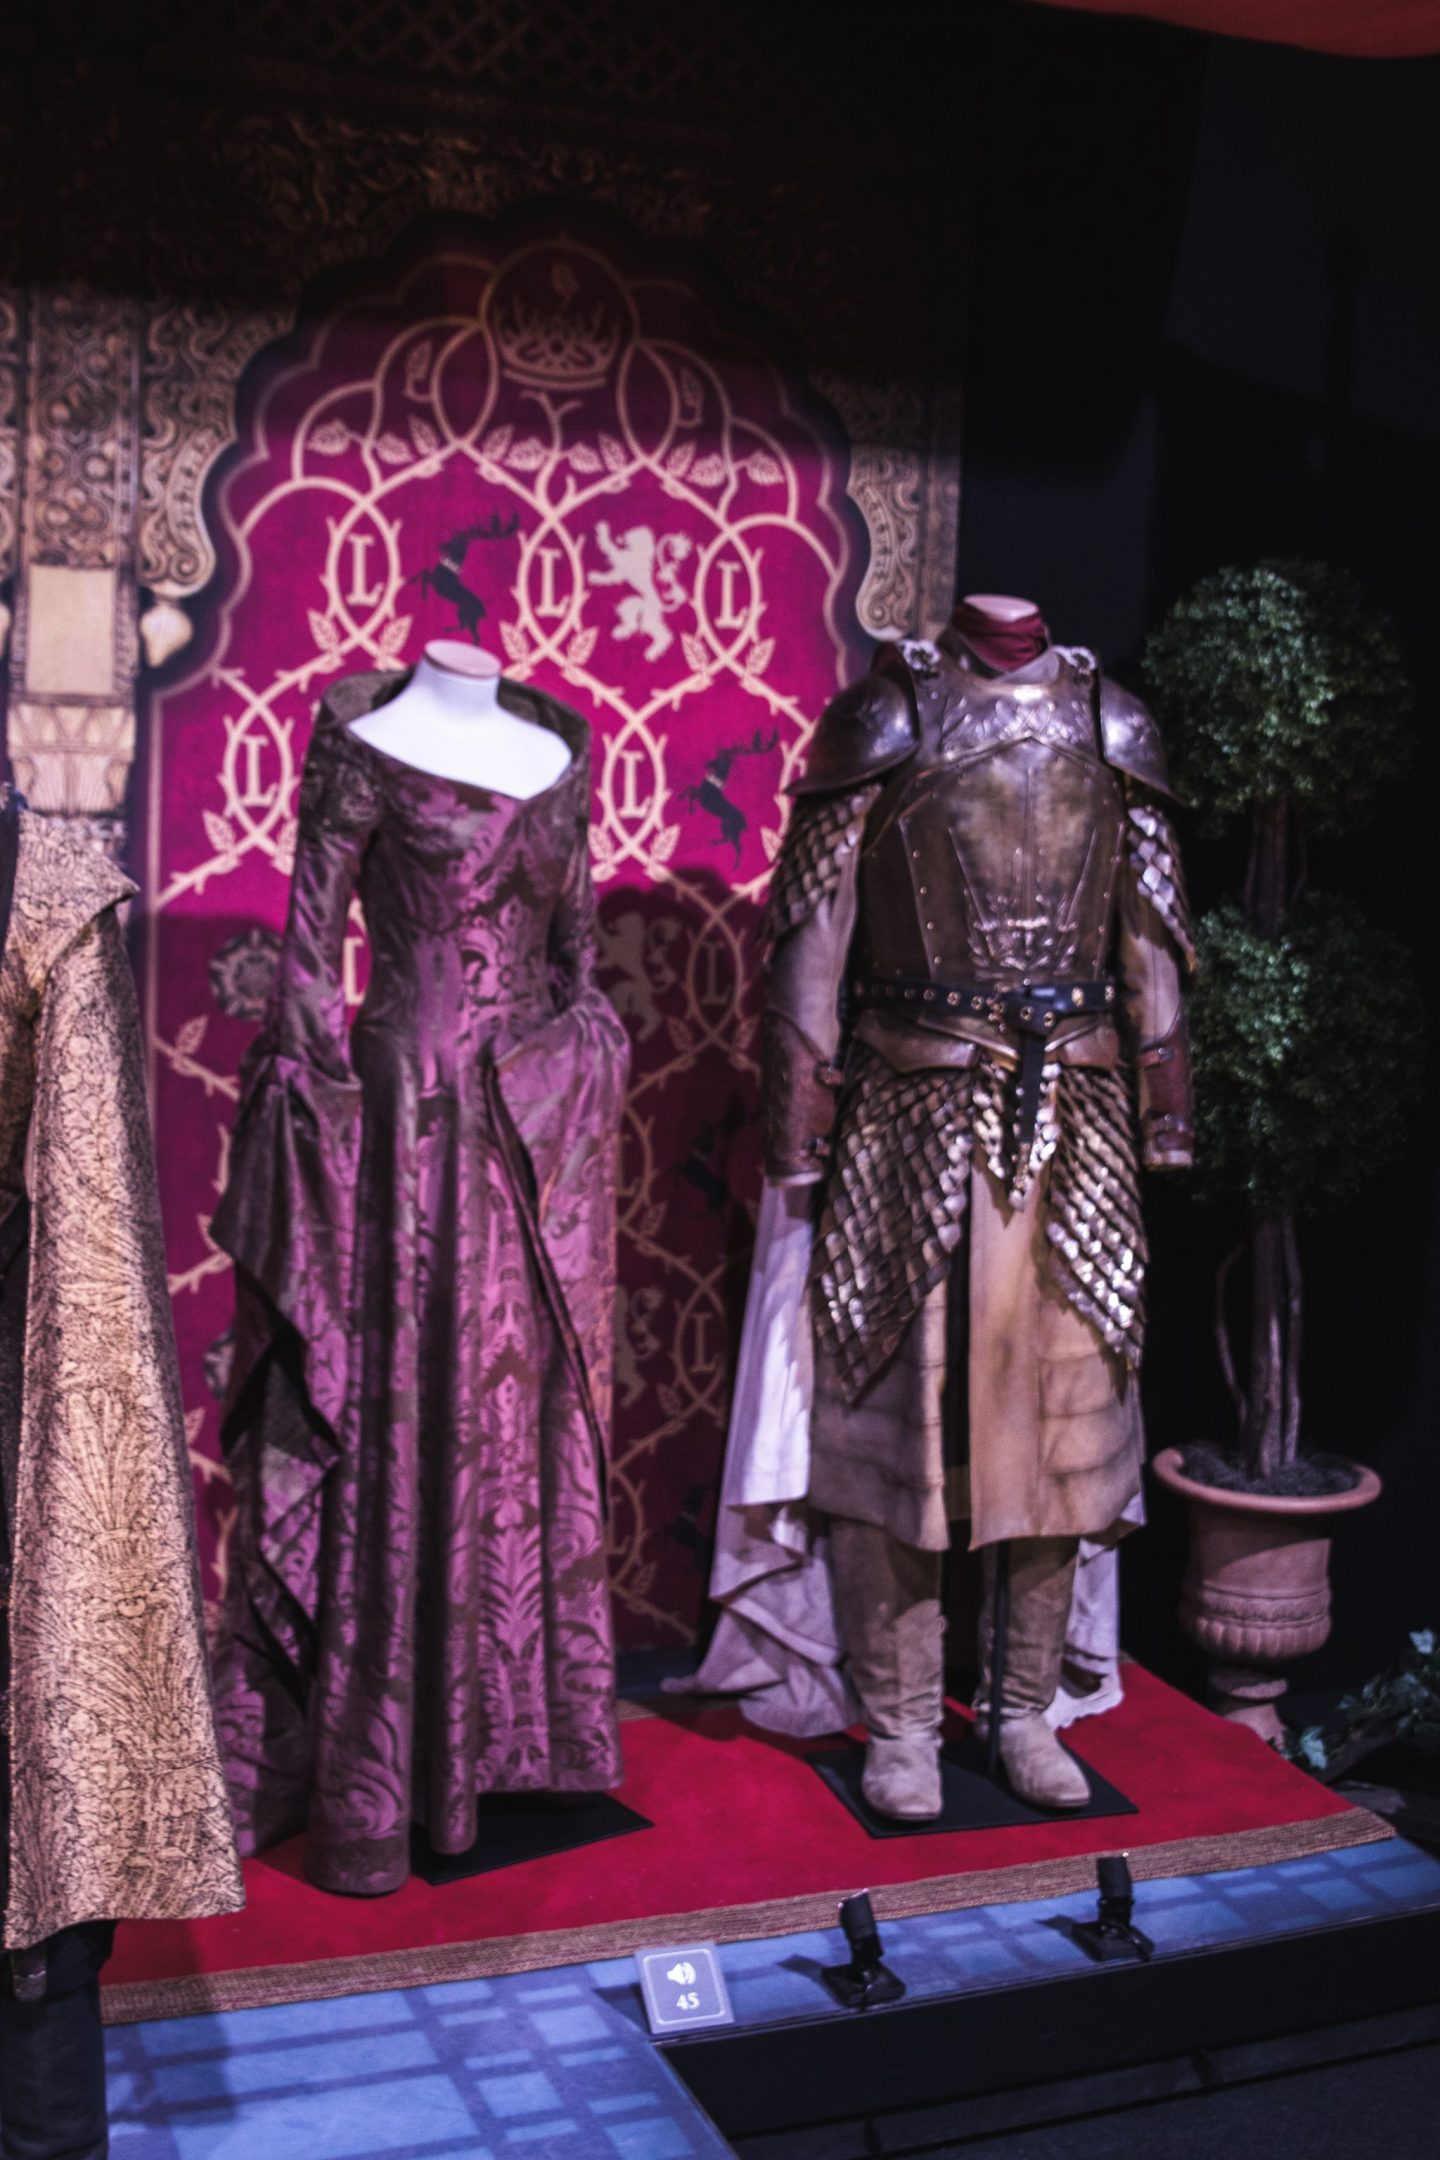 Game of Thrones the Exhibition in Oberhausen